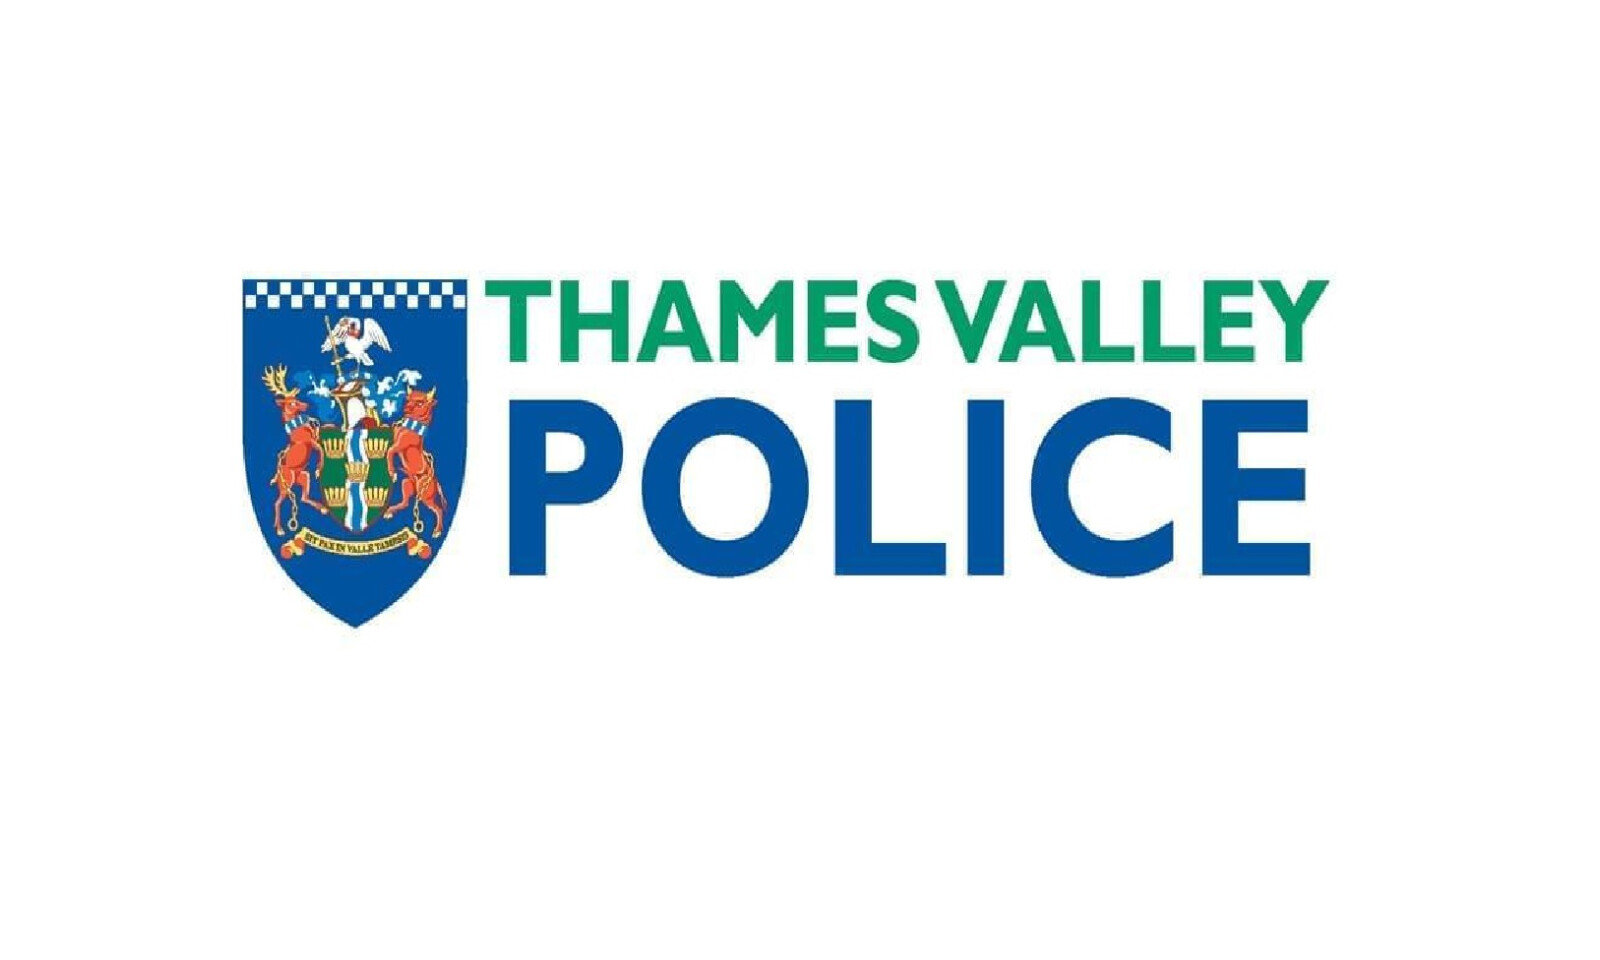 Thames Valley Police | OPEN for Police Constable Recruitment